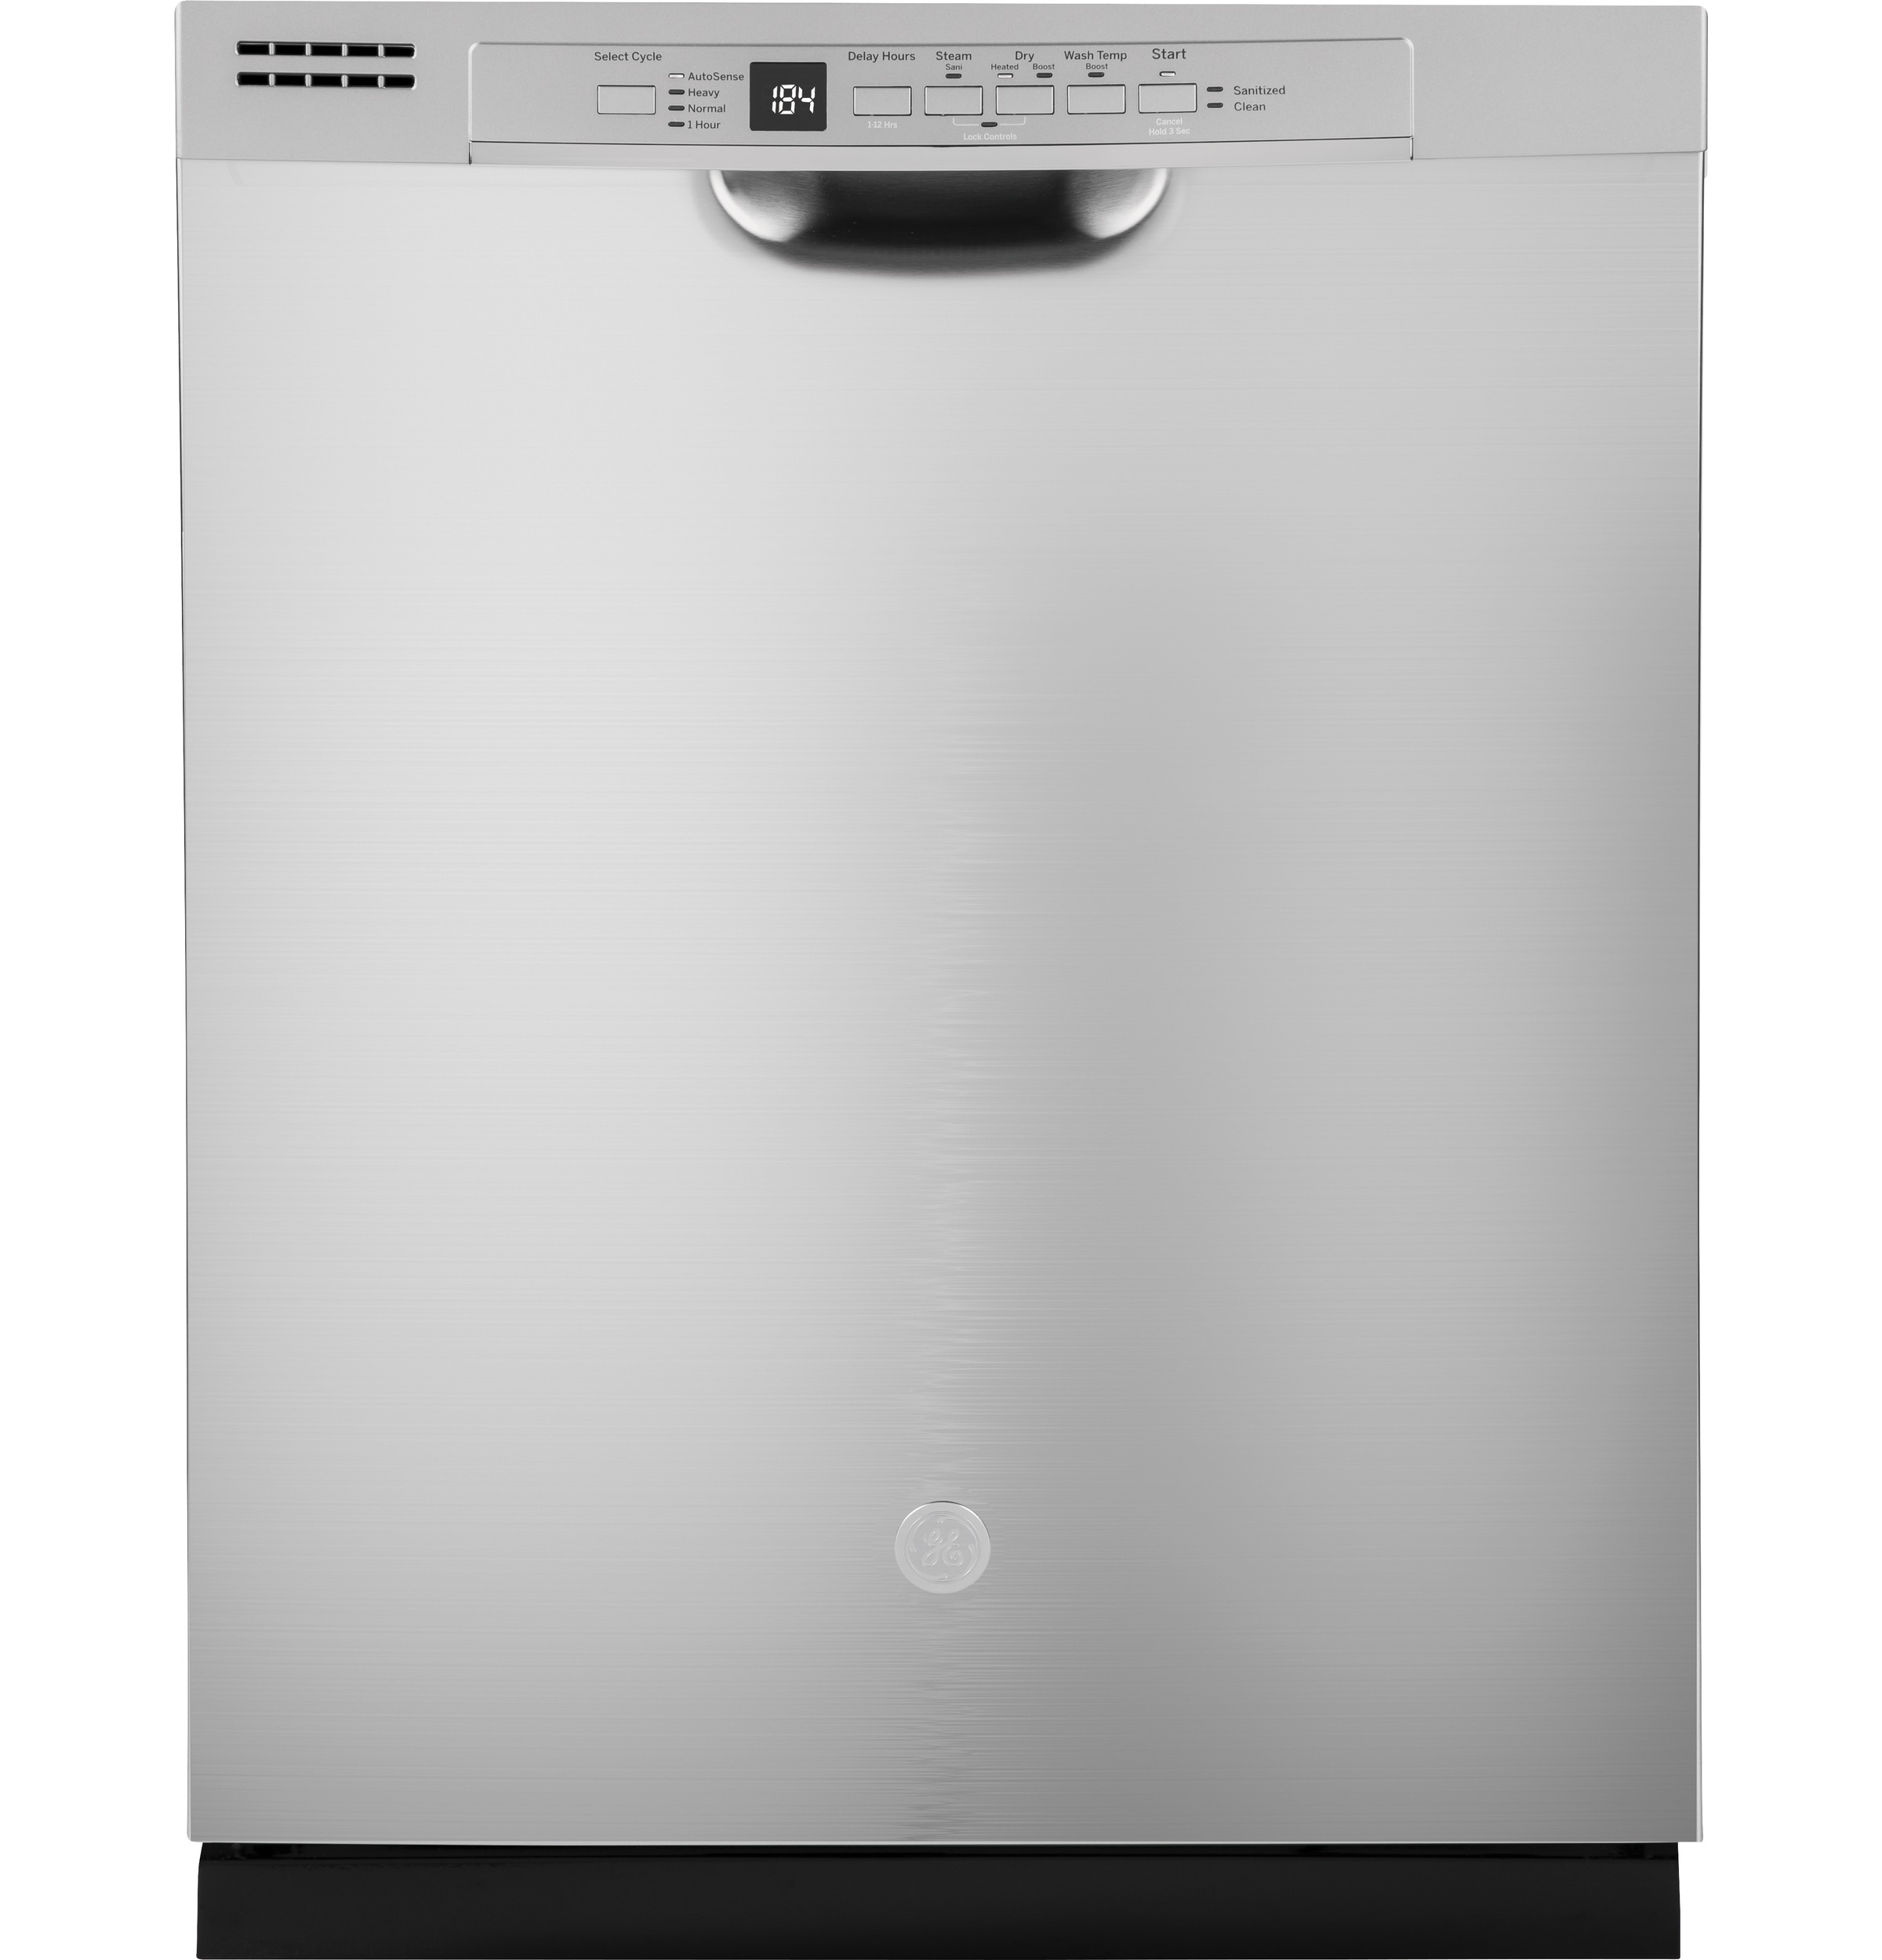 GE GDF530PSMSS 24 in. Front Control Built-In Tall Tub Dishwasher in Stainless Steel with Steam Prewash, 54 dBA - Superco Appliances, Furniture ...